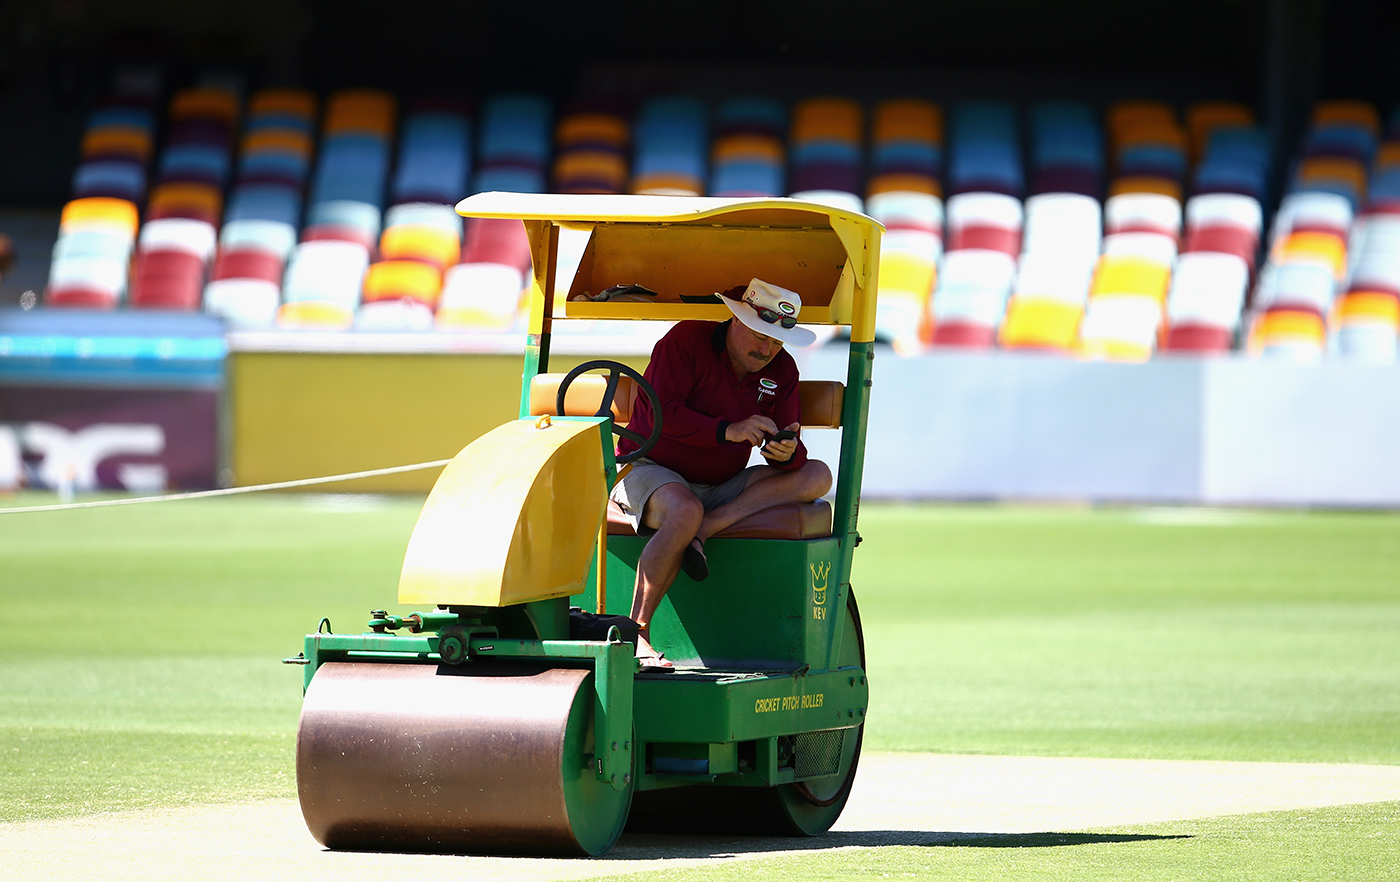 Kevin Mitchell Jr first started working on the Gabba surface in 1984 as an assistant to his father, took over as head curator in 1990, and is set to retire after the 2017 Test